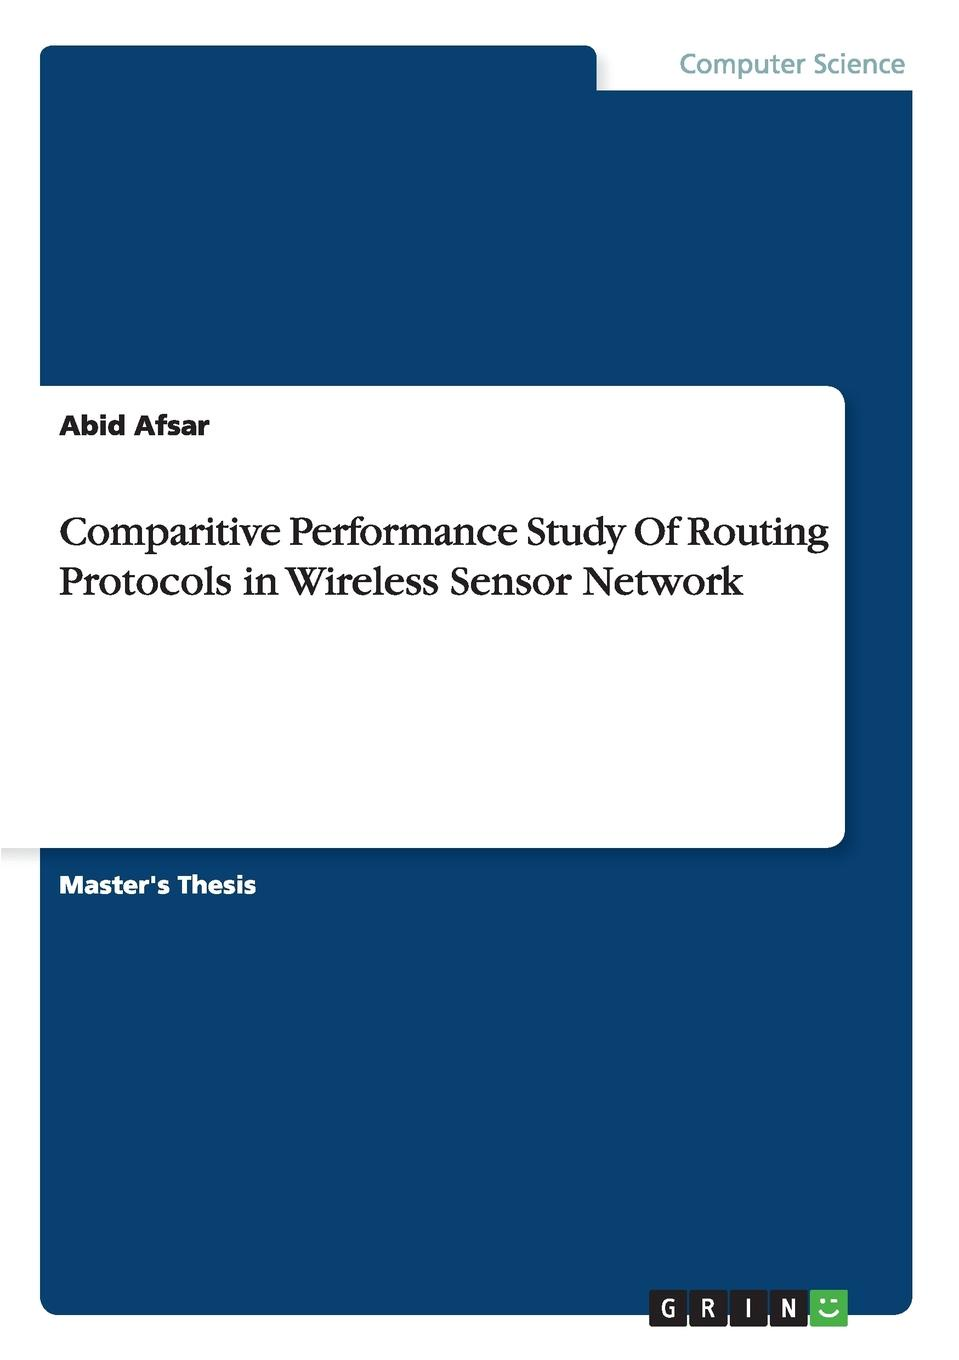 Abid Afsar Comparitive Performance Study Of Routing Protocols in Wireless Sensor Network